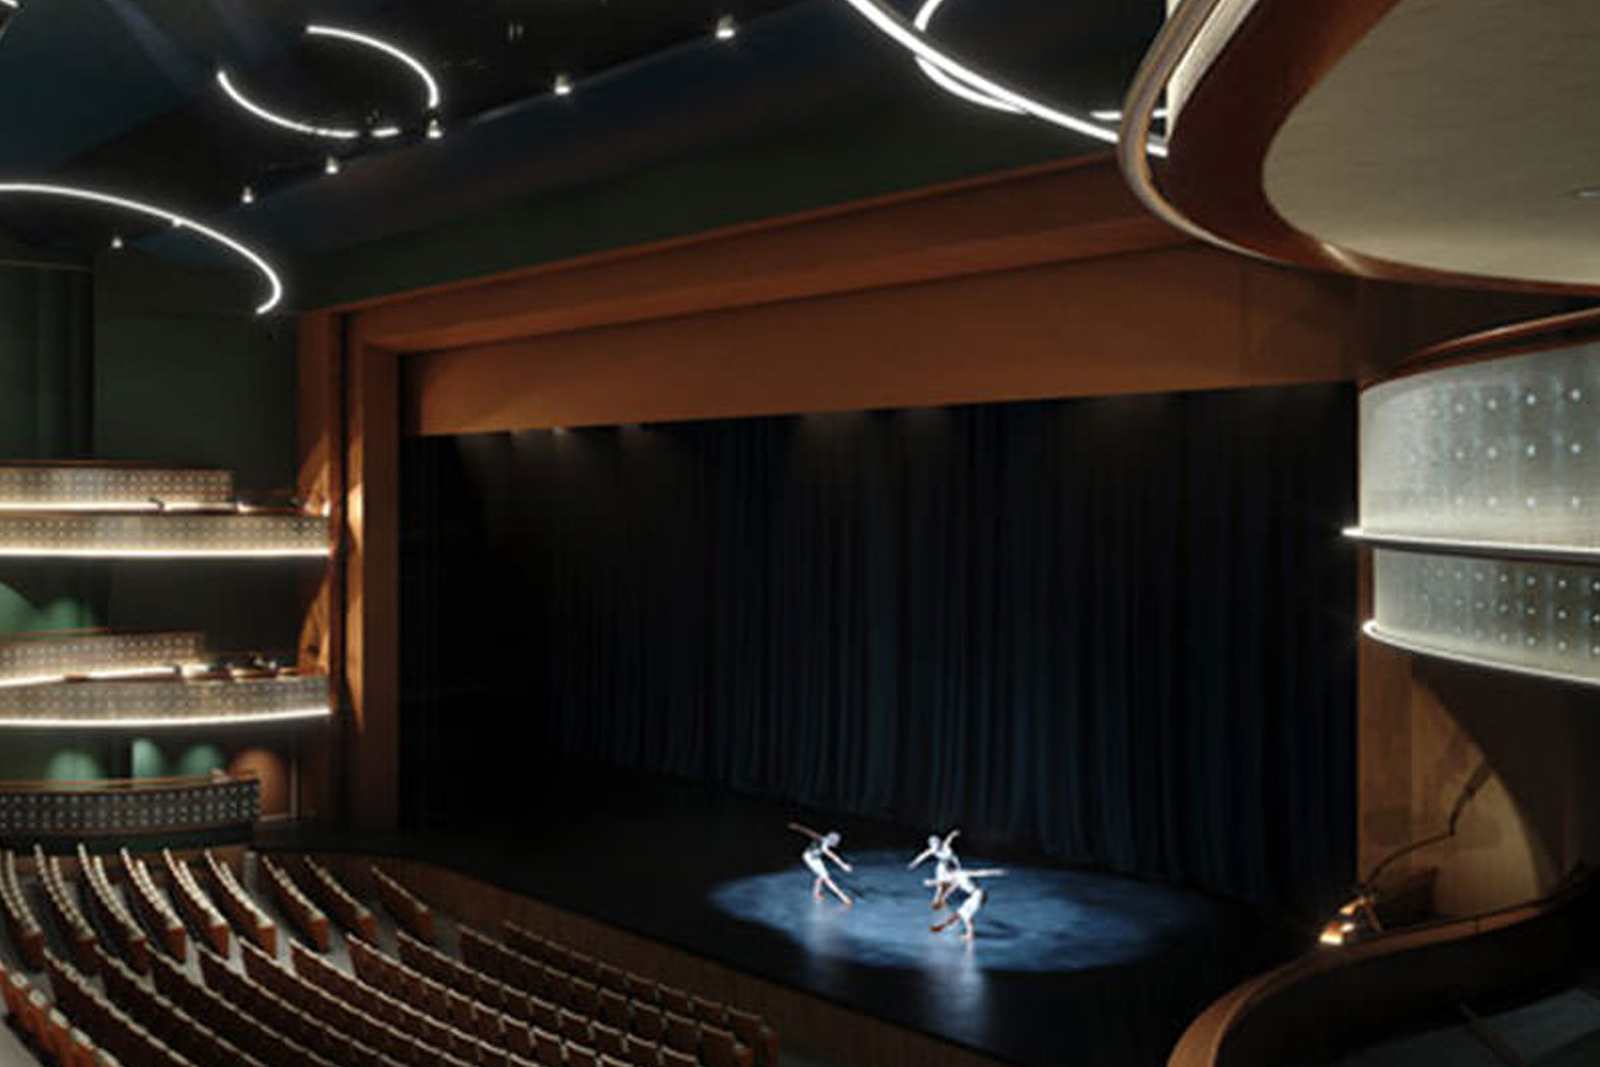 Entertainment hall stage with ballet performers